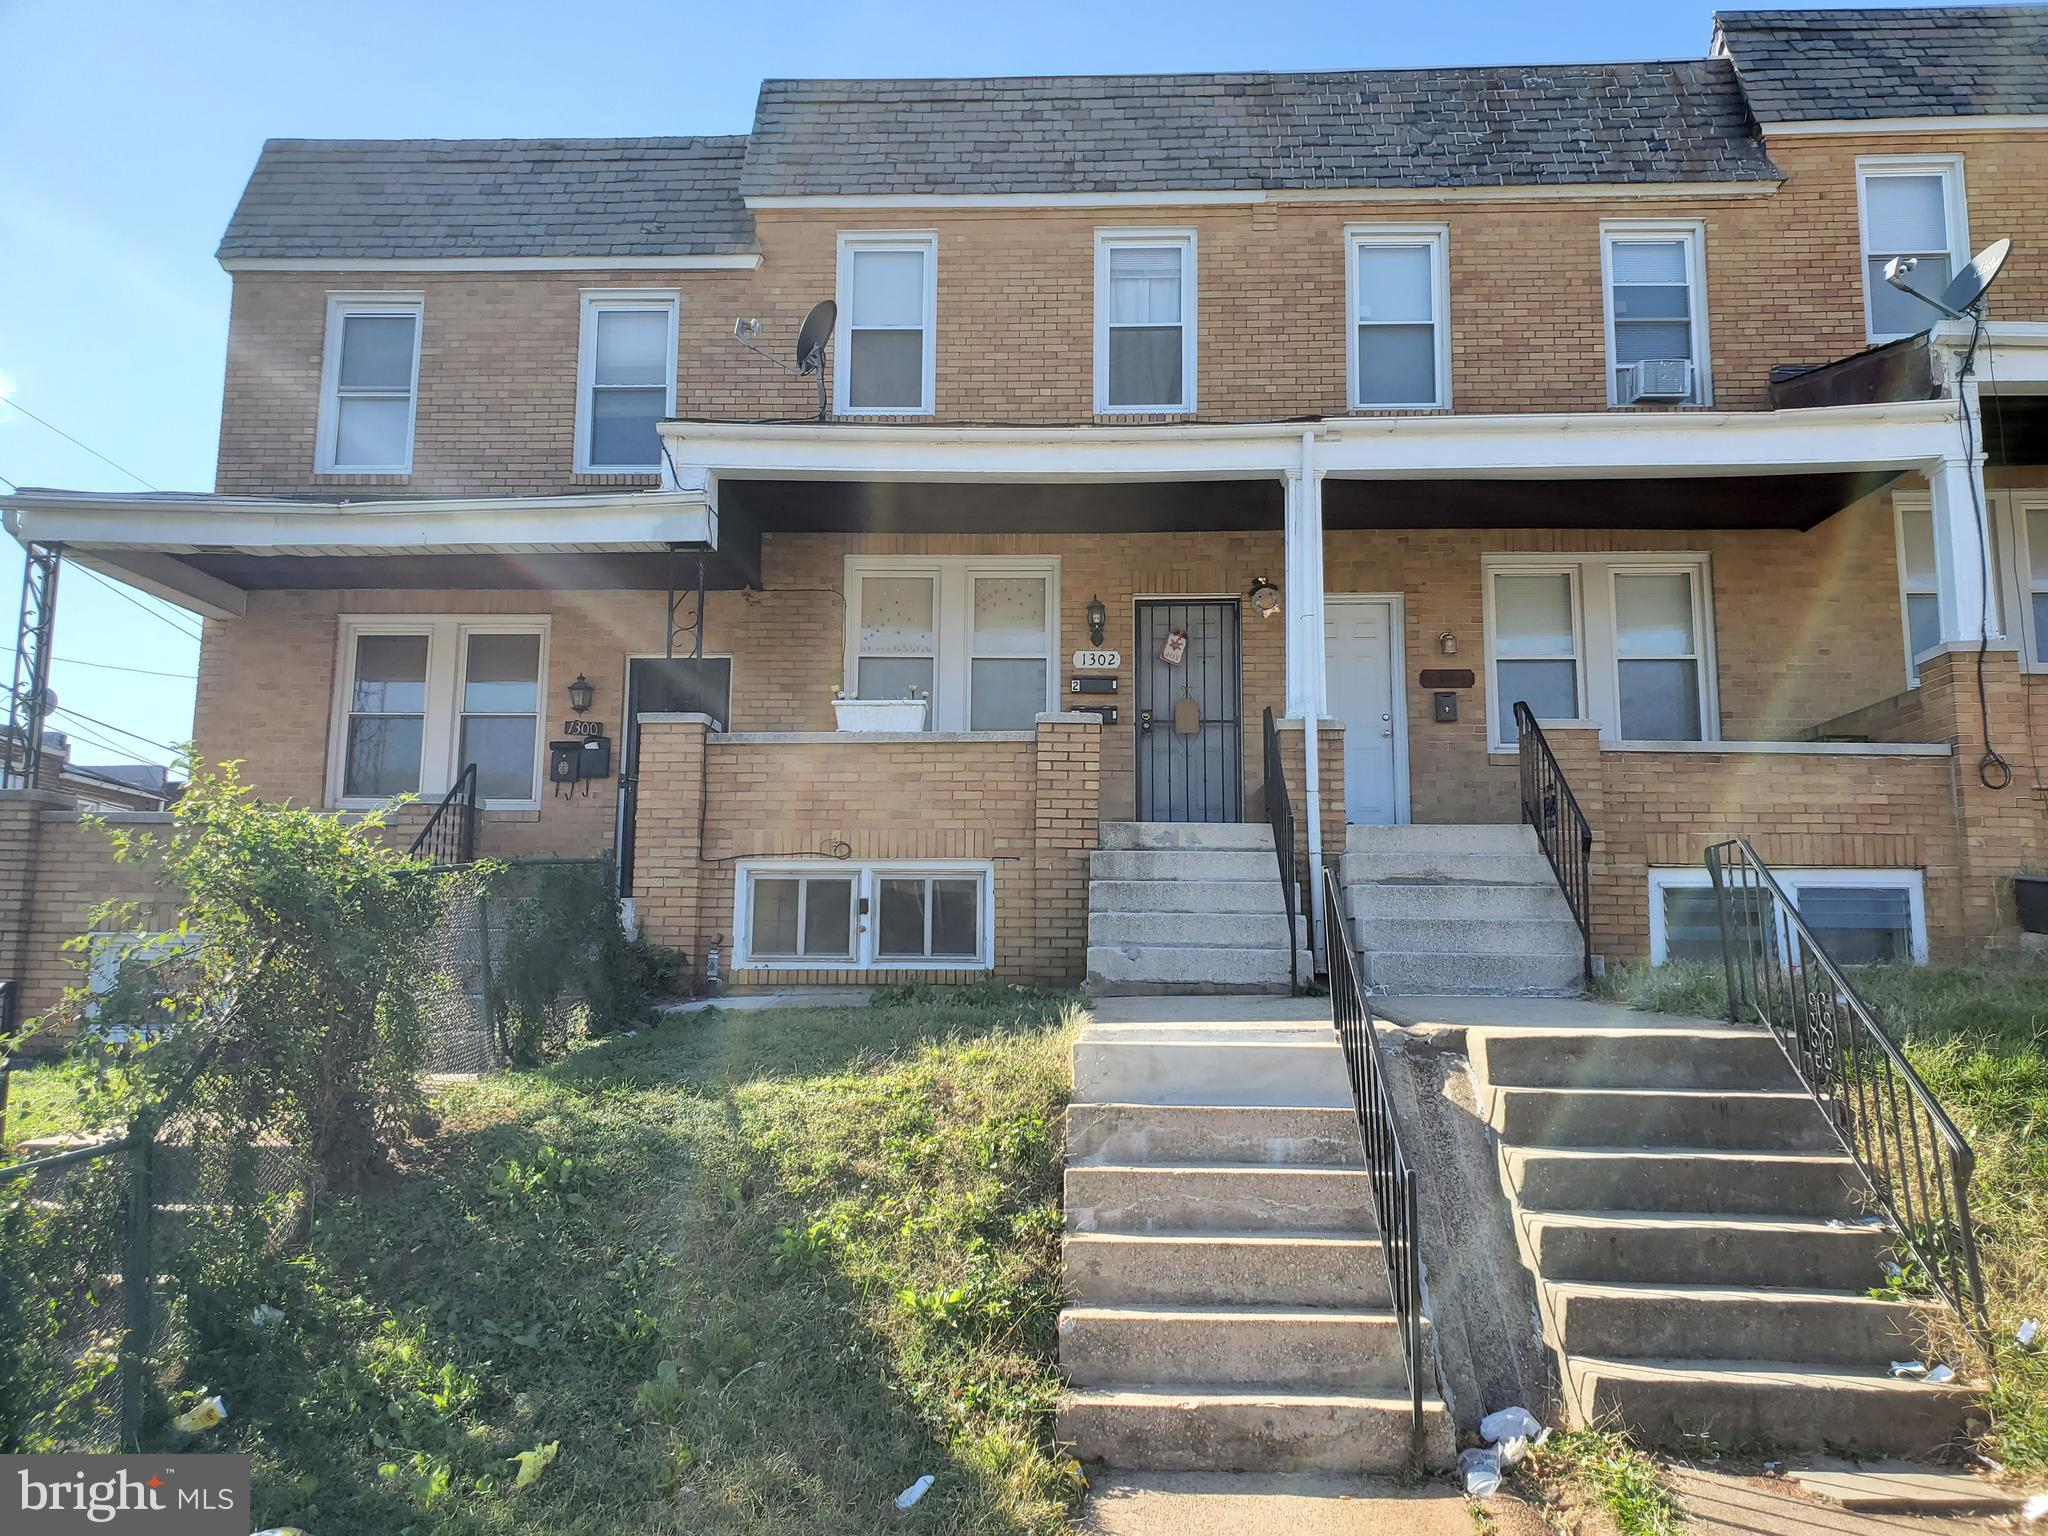 1302 N KENWOOD AVENUE, BALTIMORE, MD 21213